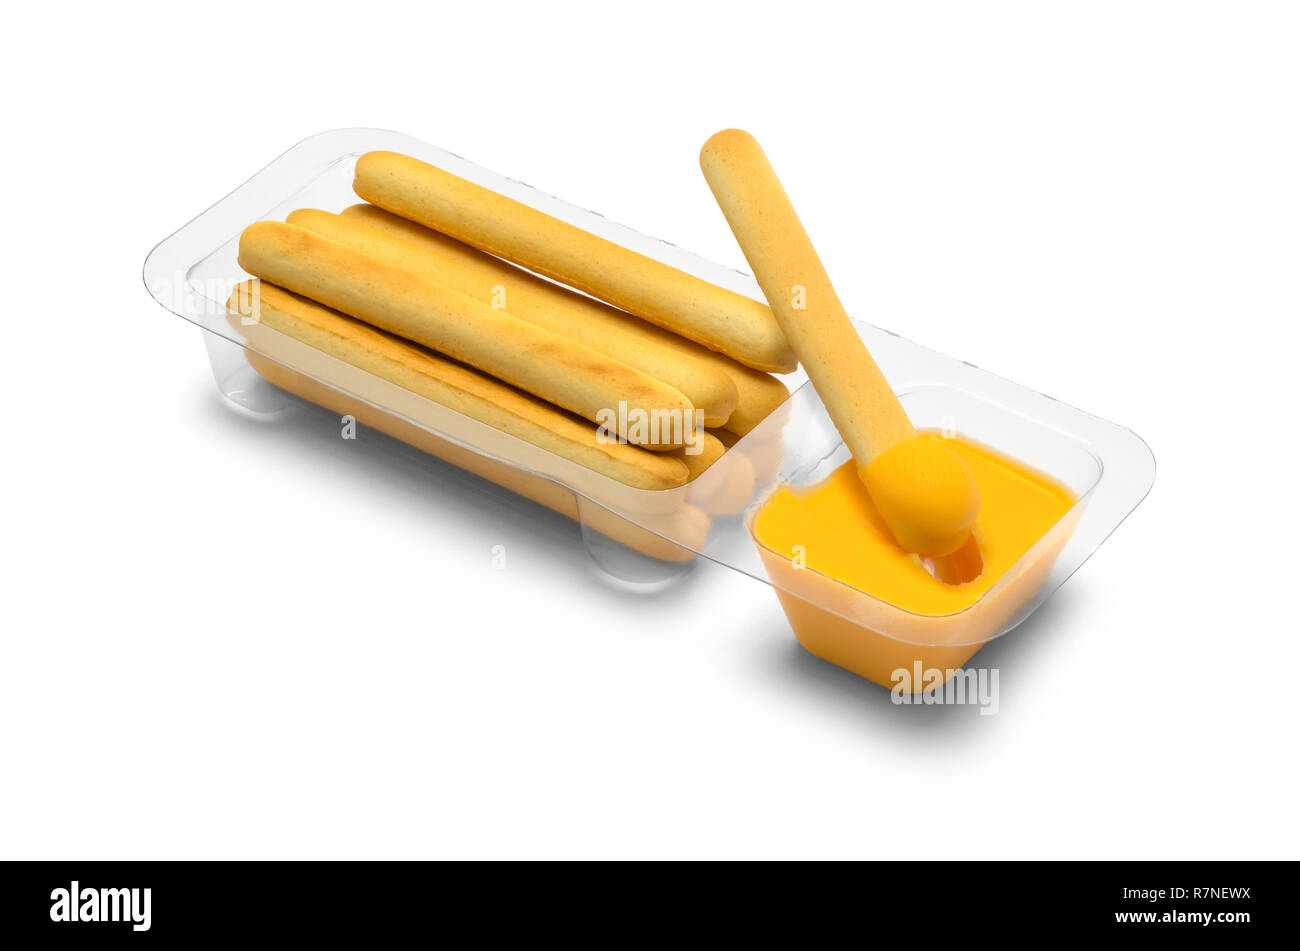 Cracker Sticks Dipped in Cheese Isolated on White Background. - Stock Image